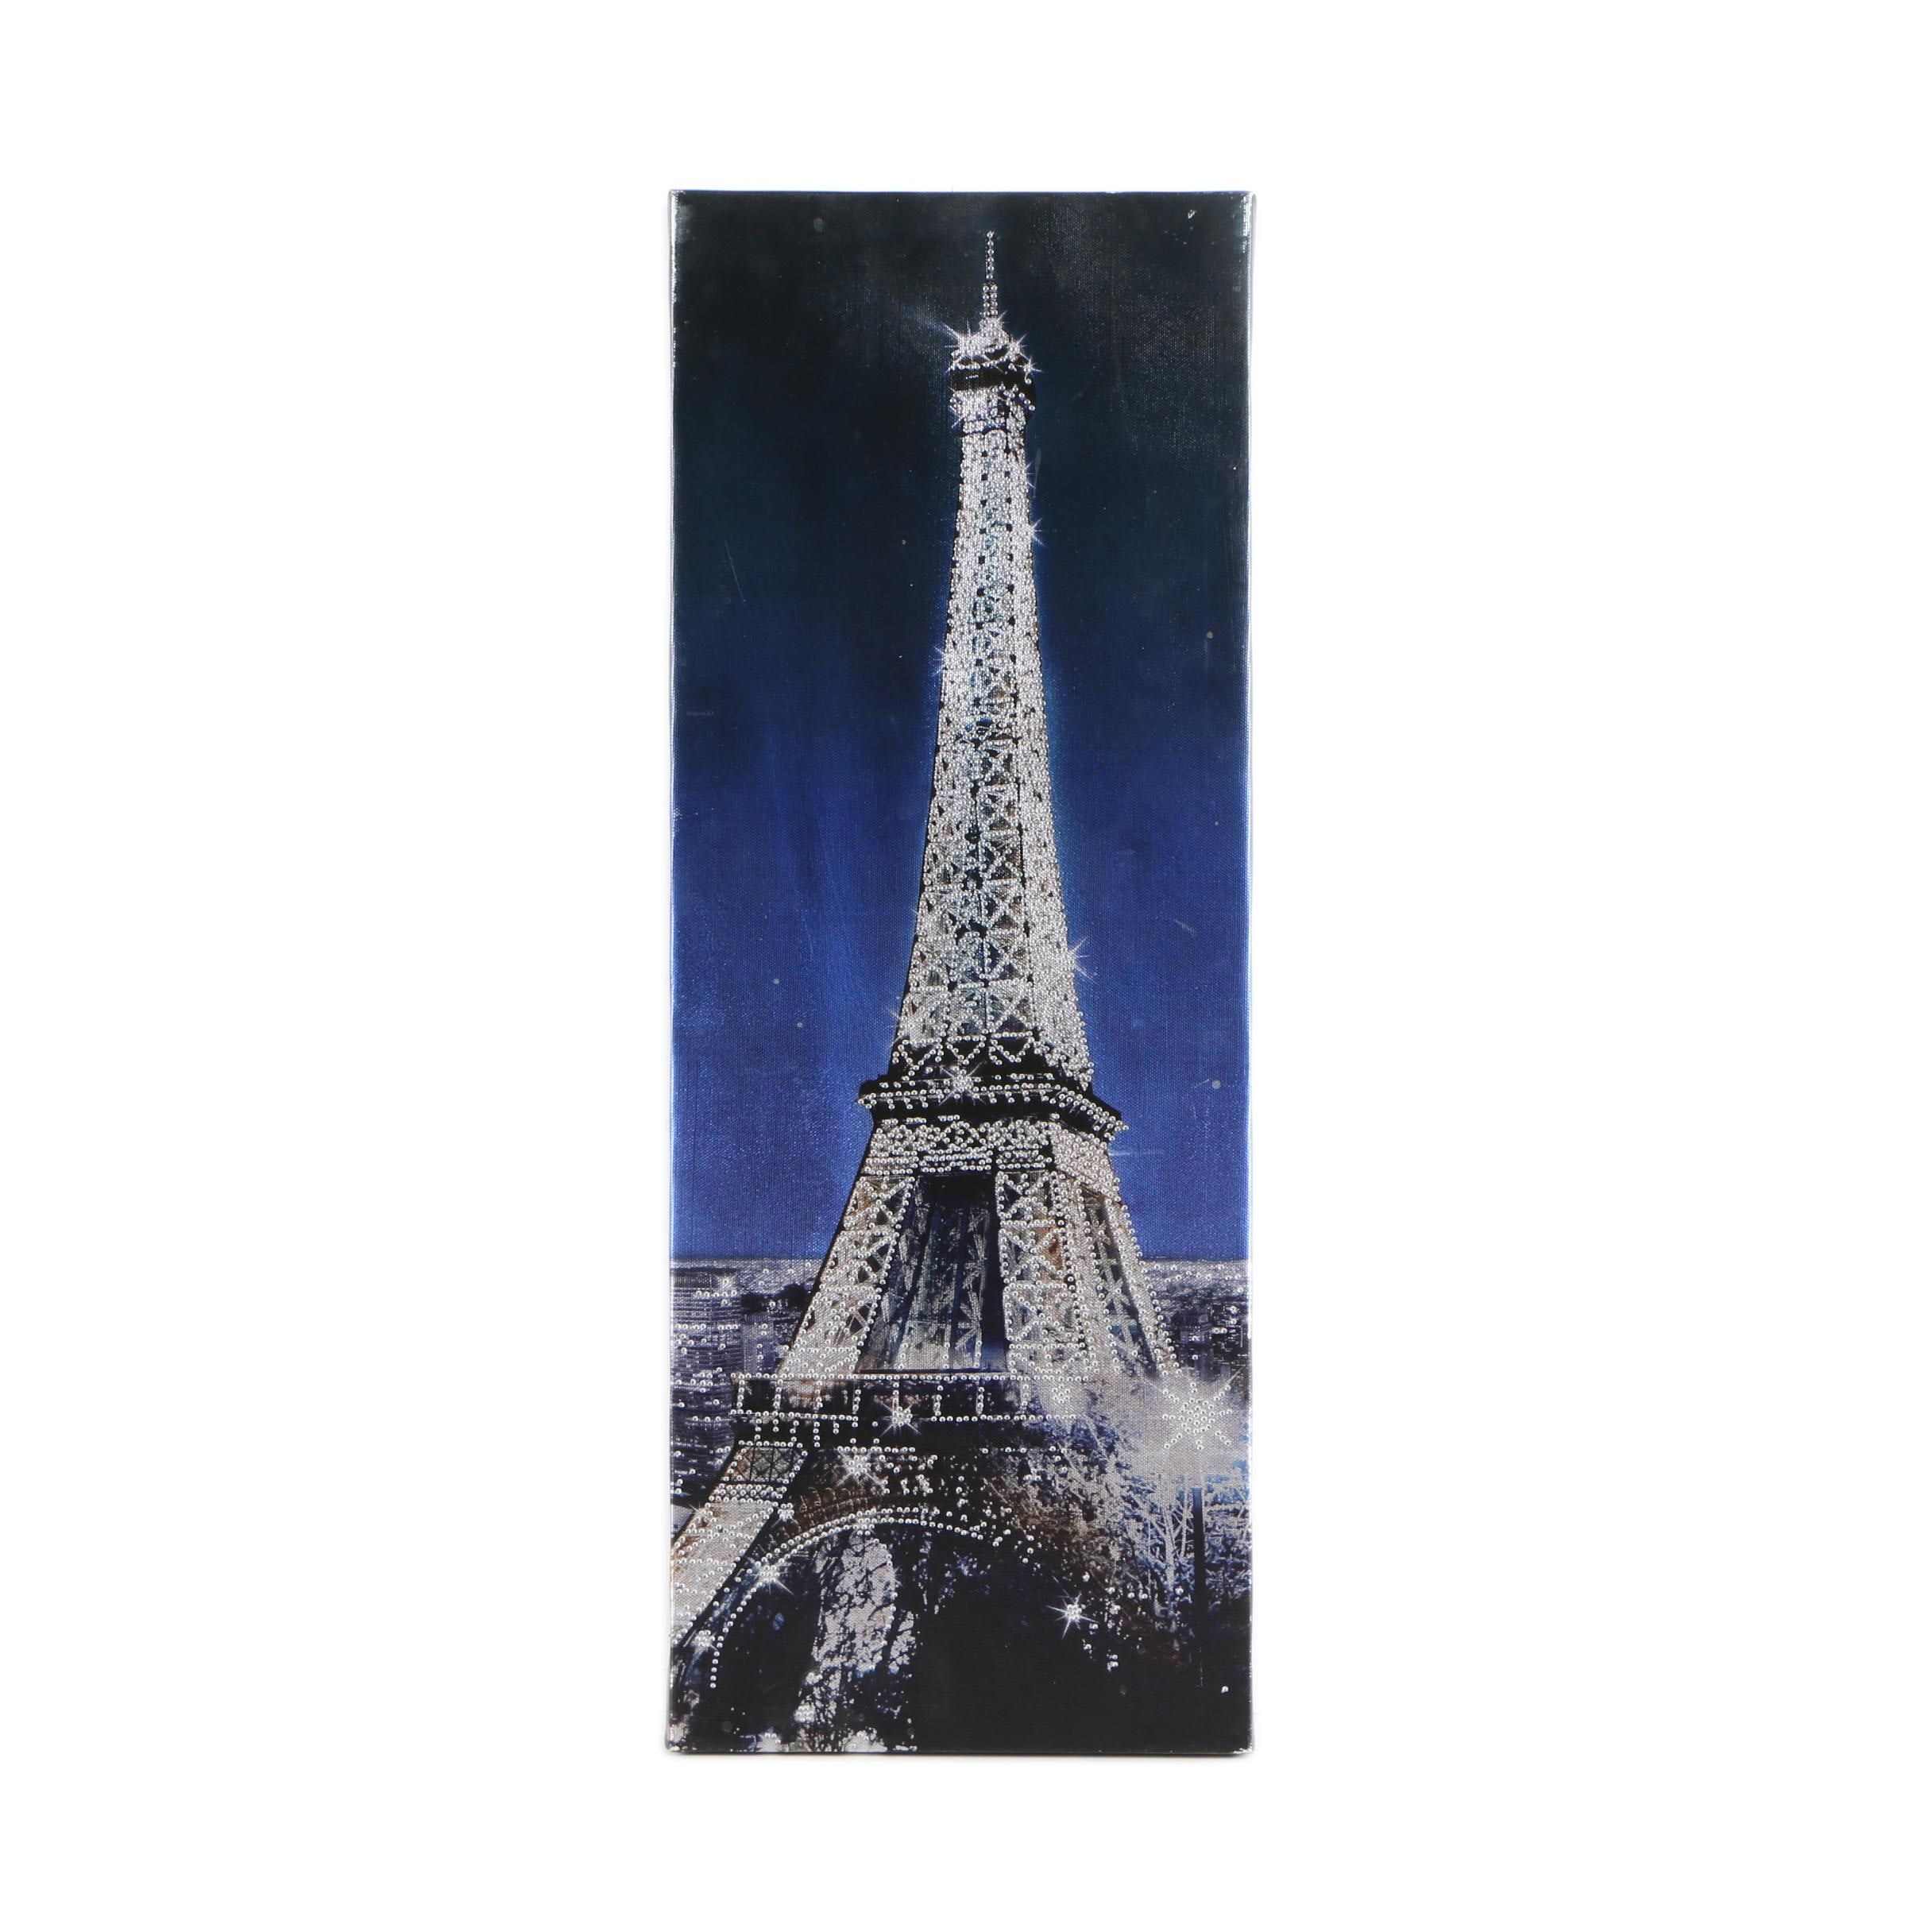 Embellished Giclee Print on Canvas of Eiffel Tower